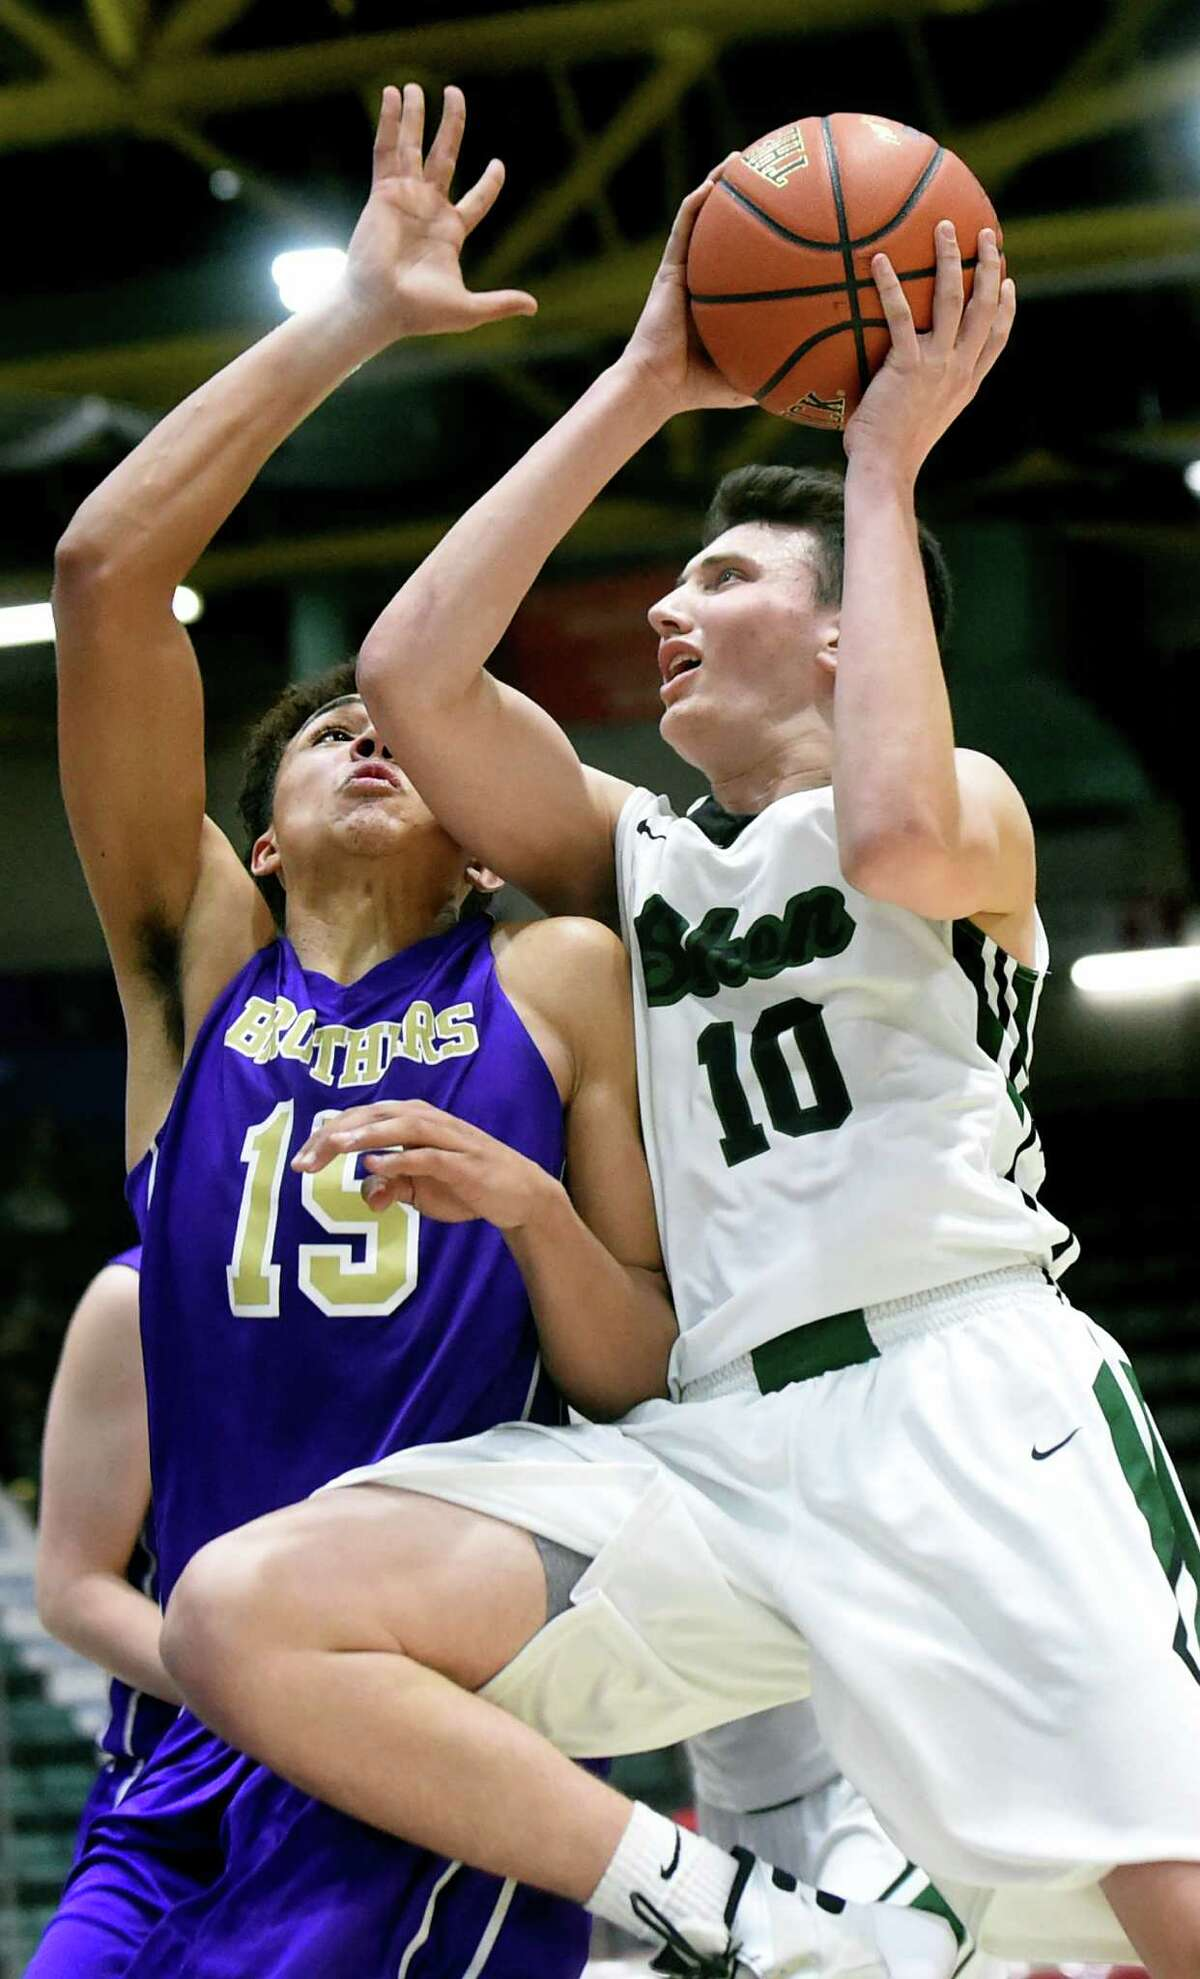 Shen's Luke Hicks, right, goes for the hoop as CBA's Mike Wynn defends during their Class AA basketball semifinal on Thursday, Feb. 25, 2016, at Glens Falls Civic Center in Glens Falls, N.Y. (Cindy Schultz / Times Union)